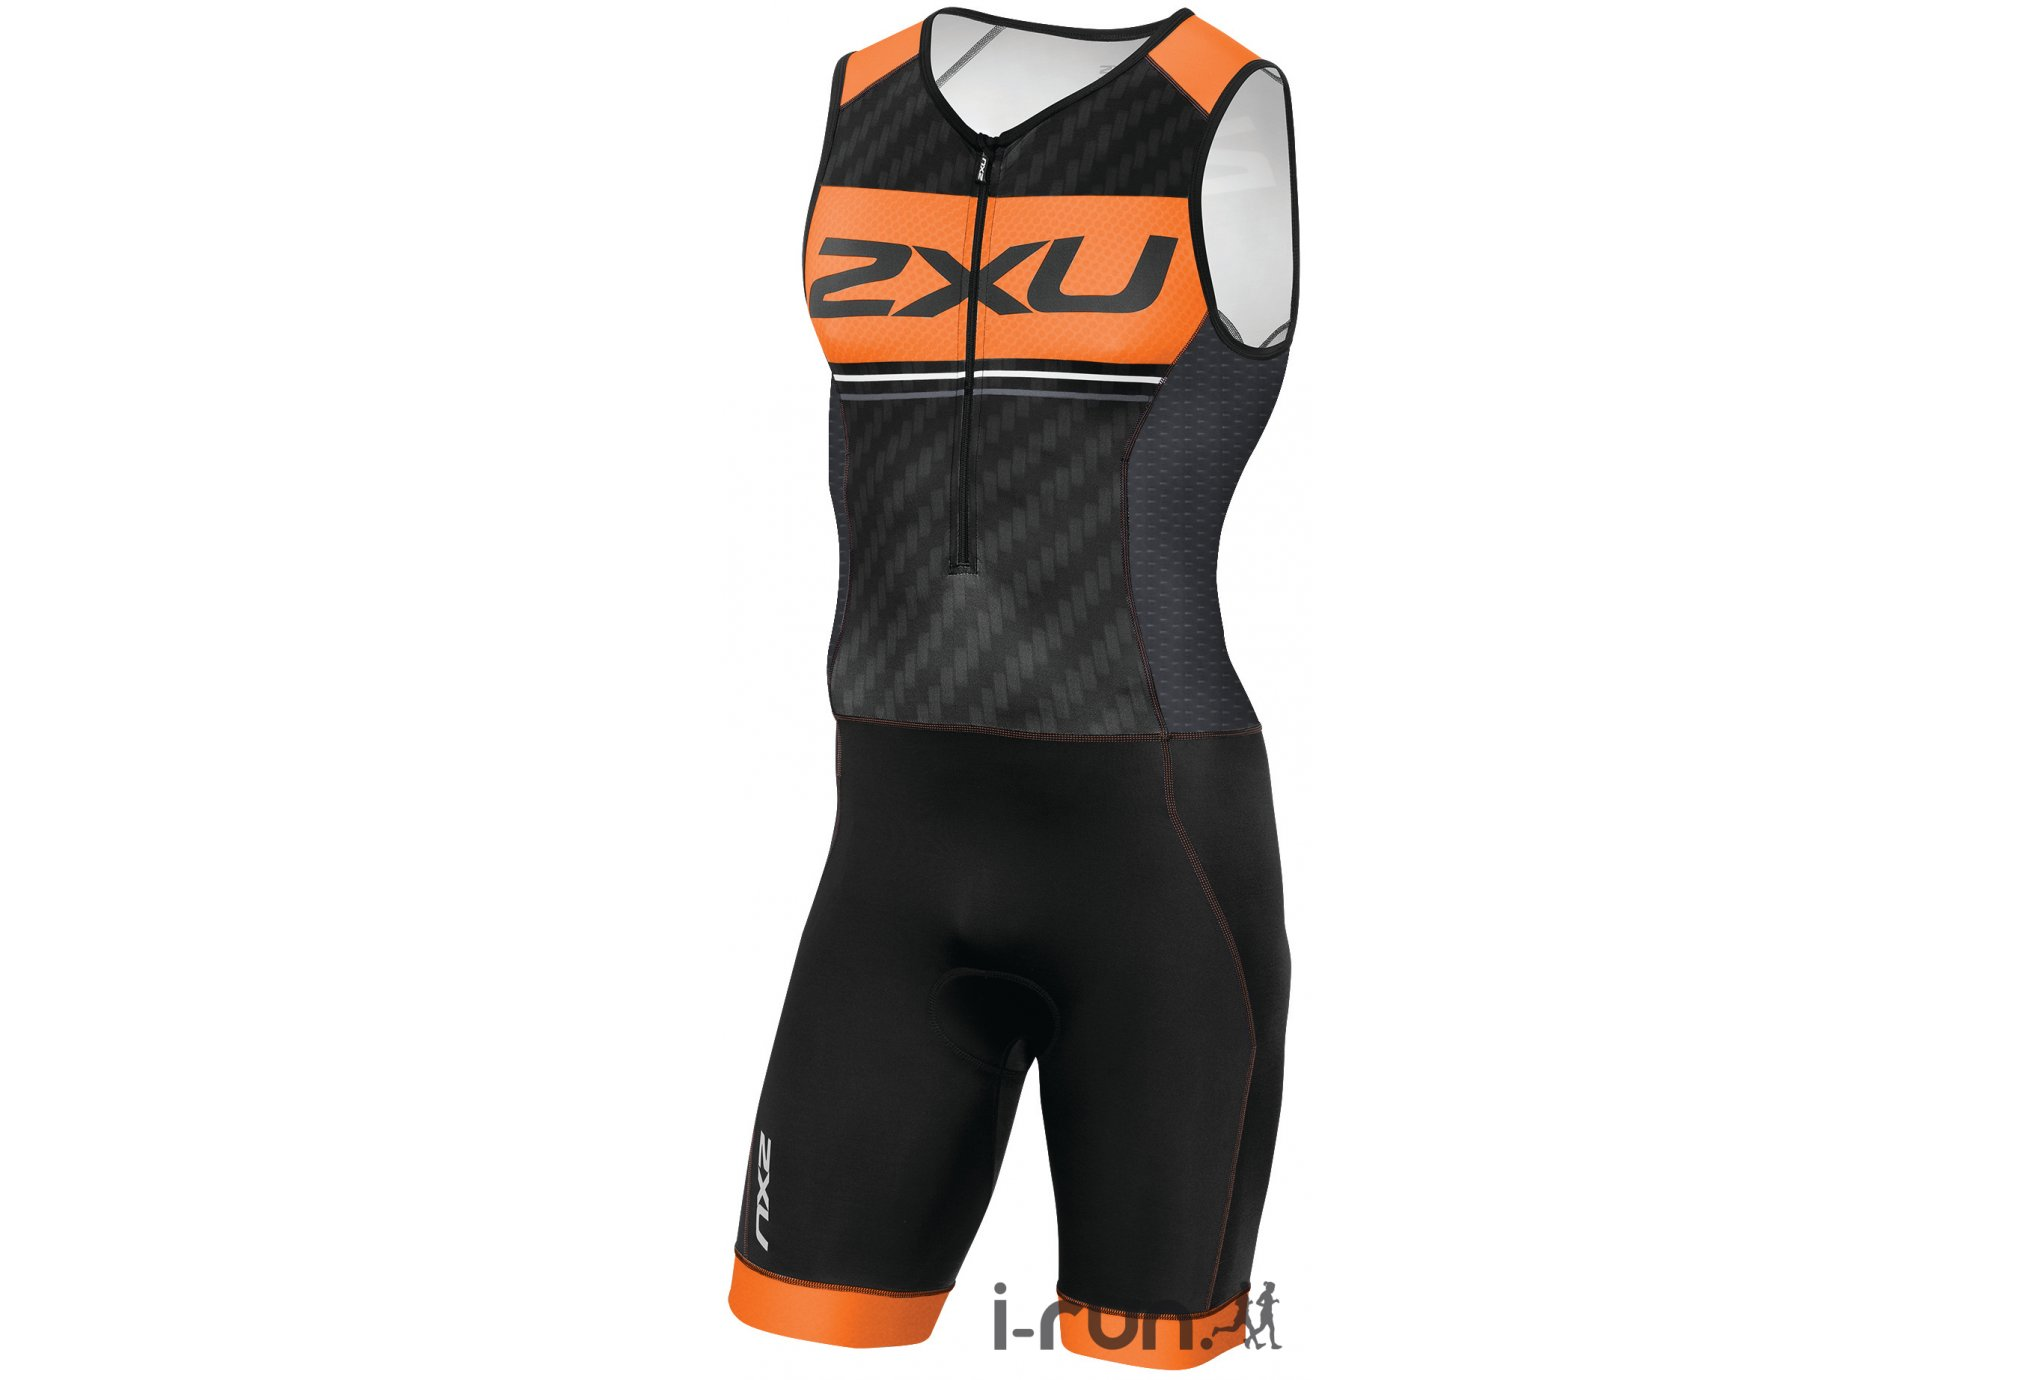 2xu Combinaison perform pro trisuit m vêtement running homme